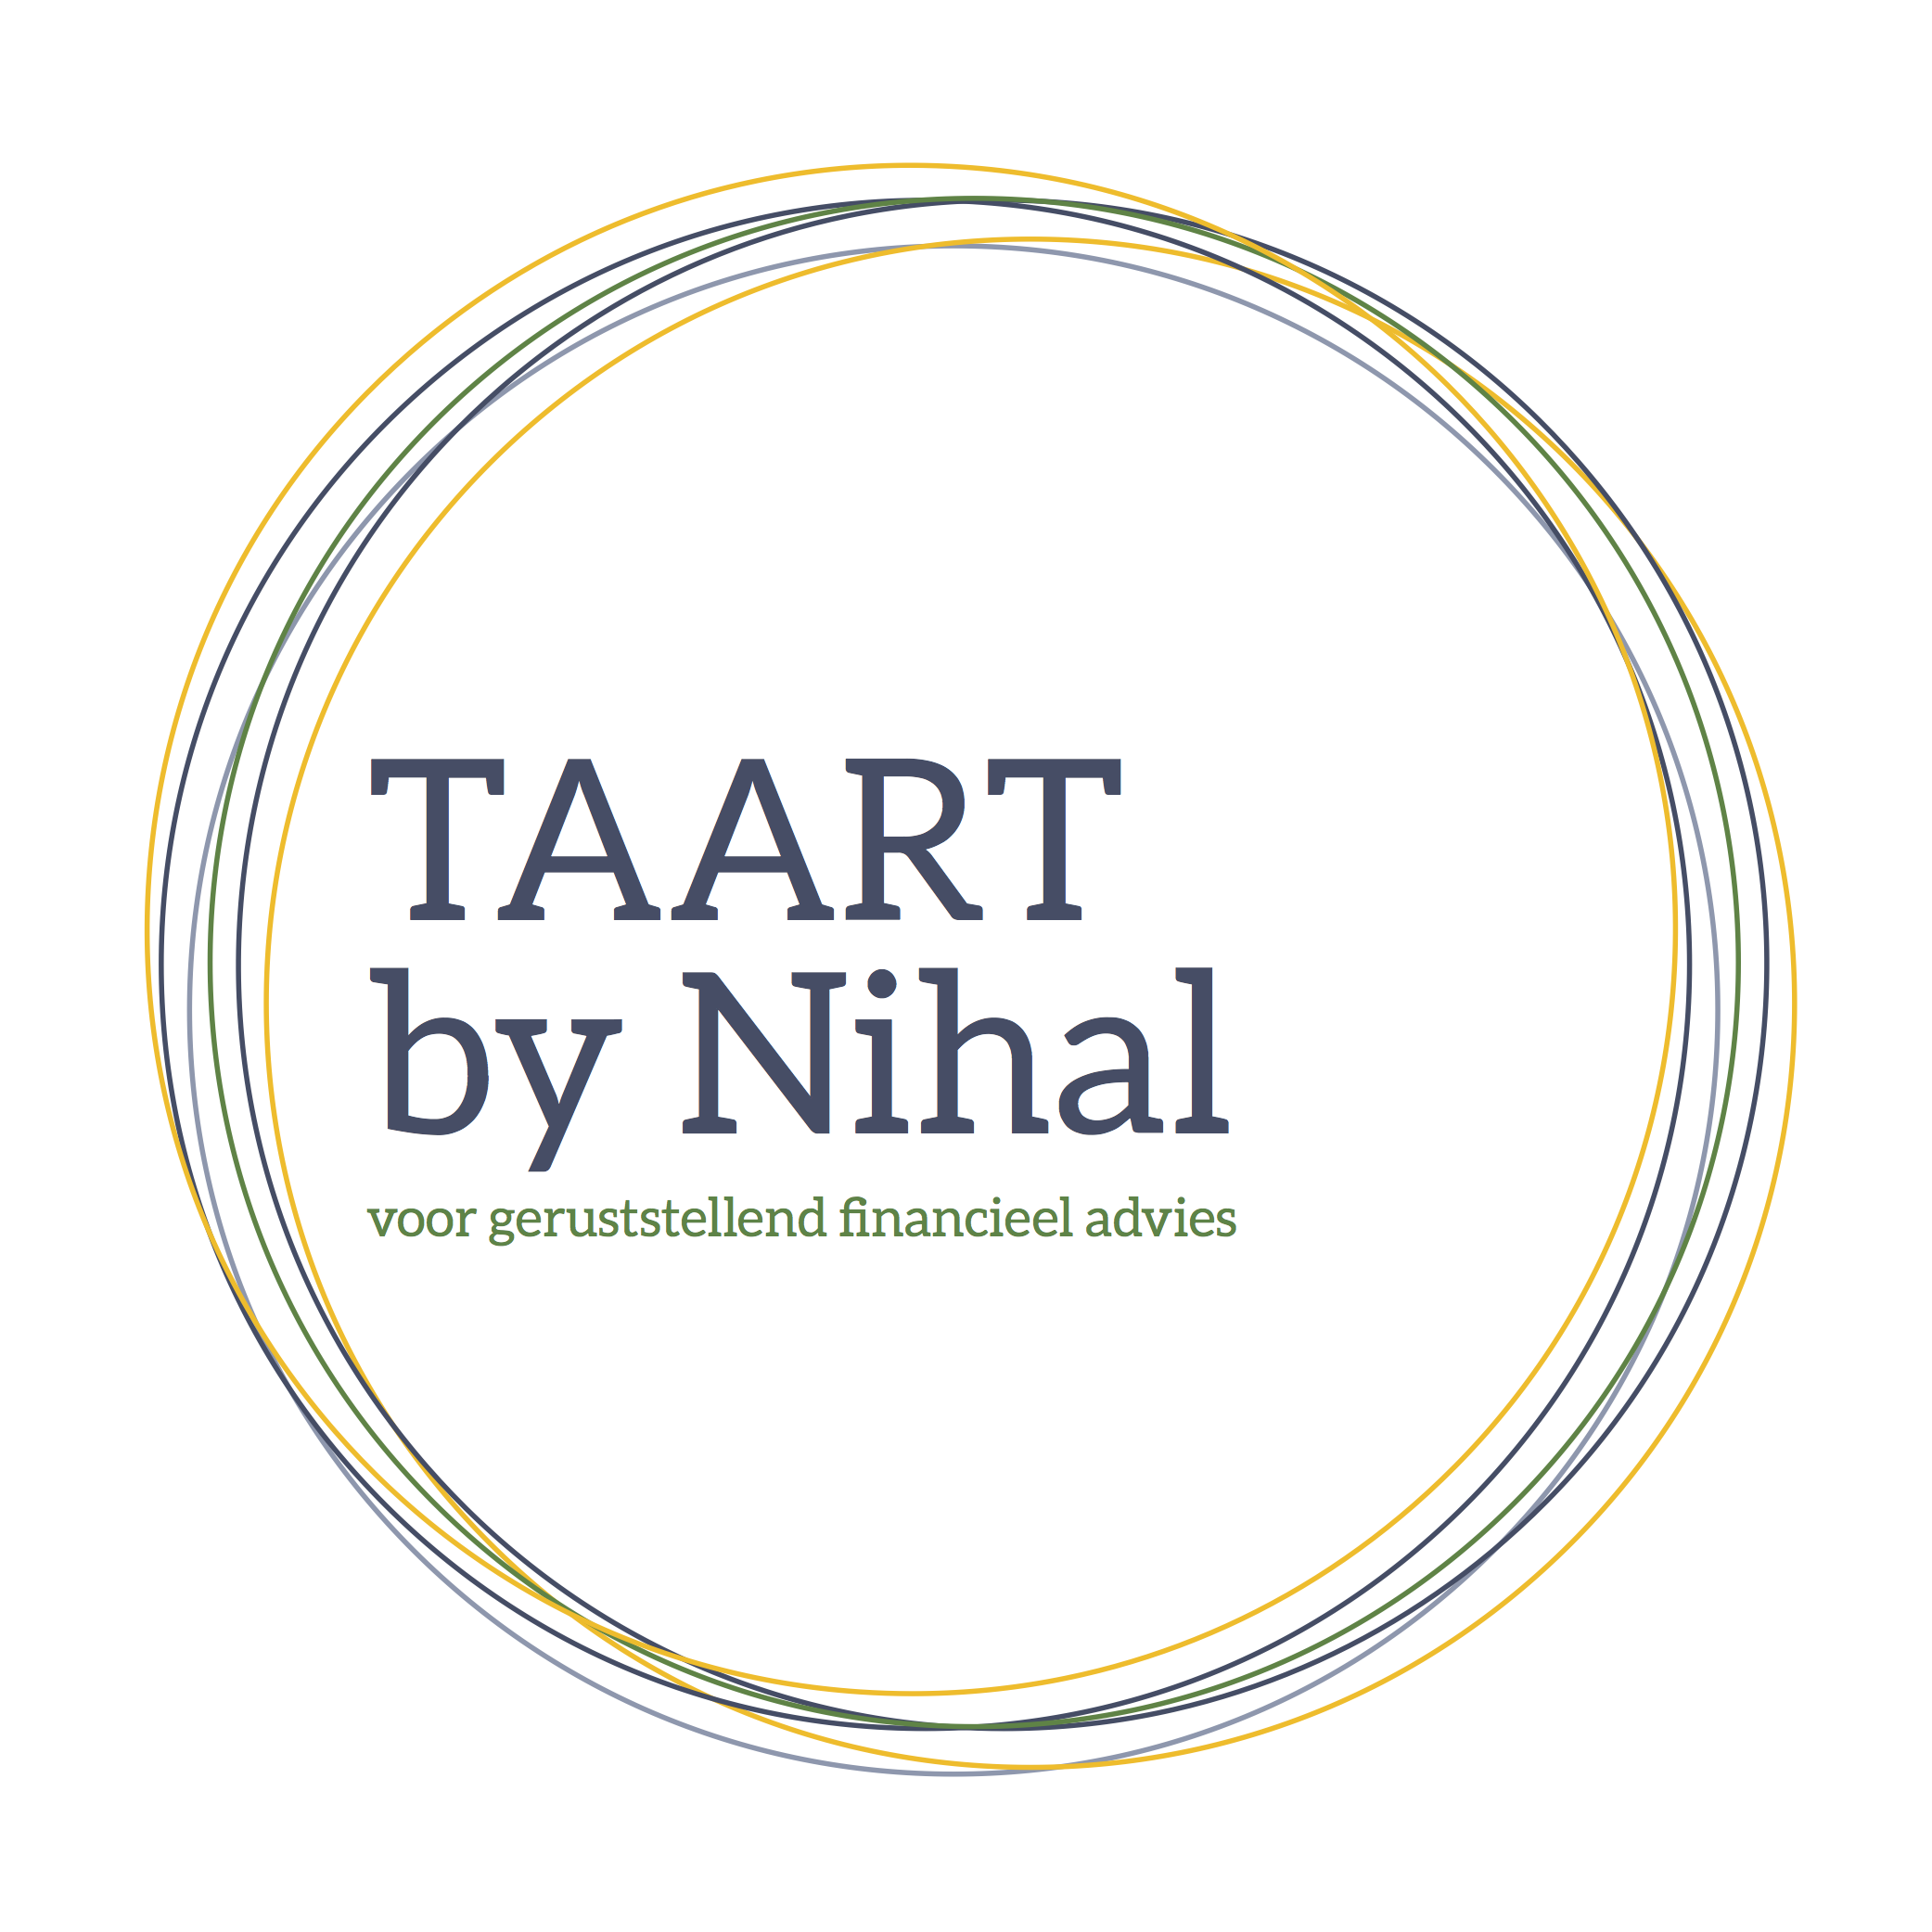 TAART by Nihal